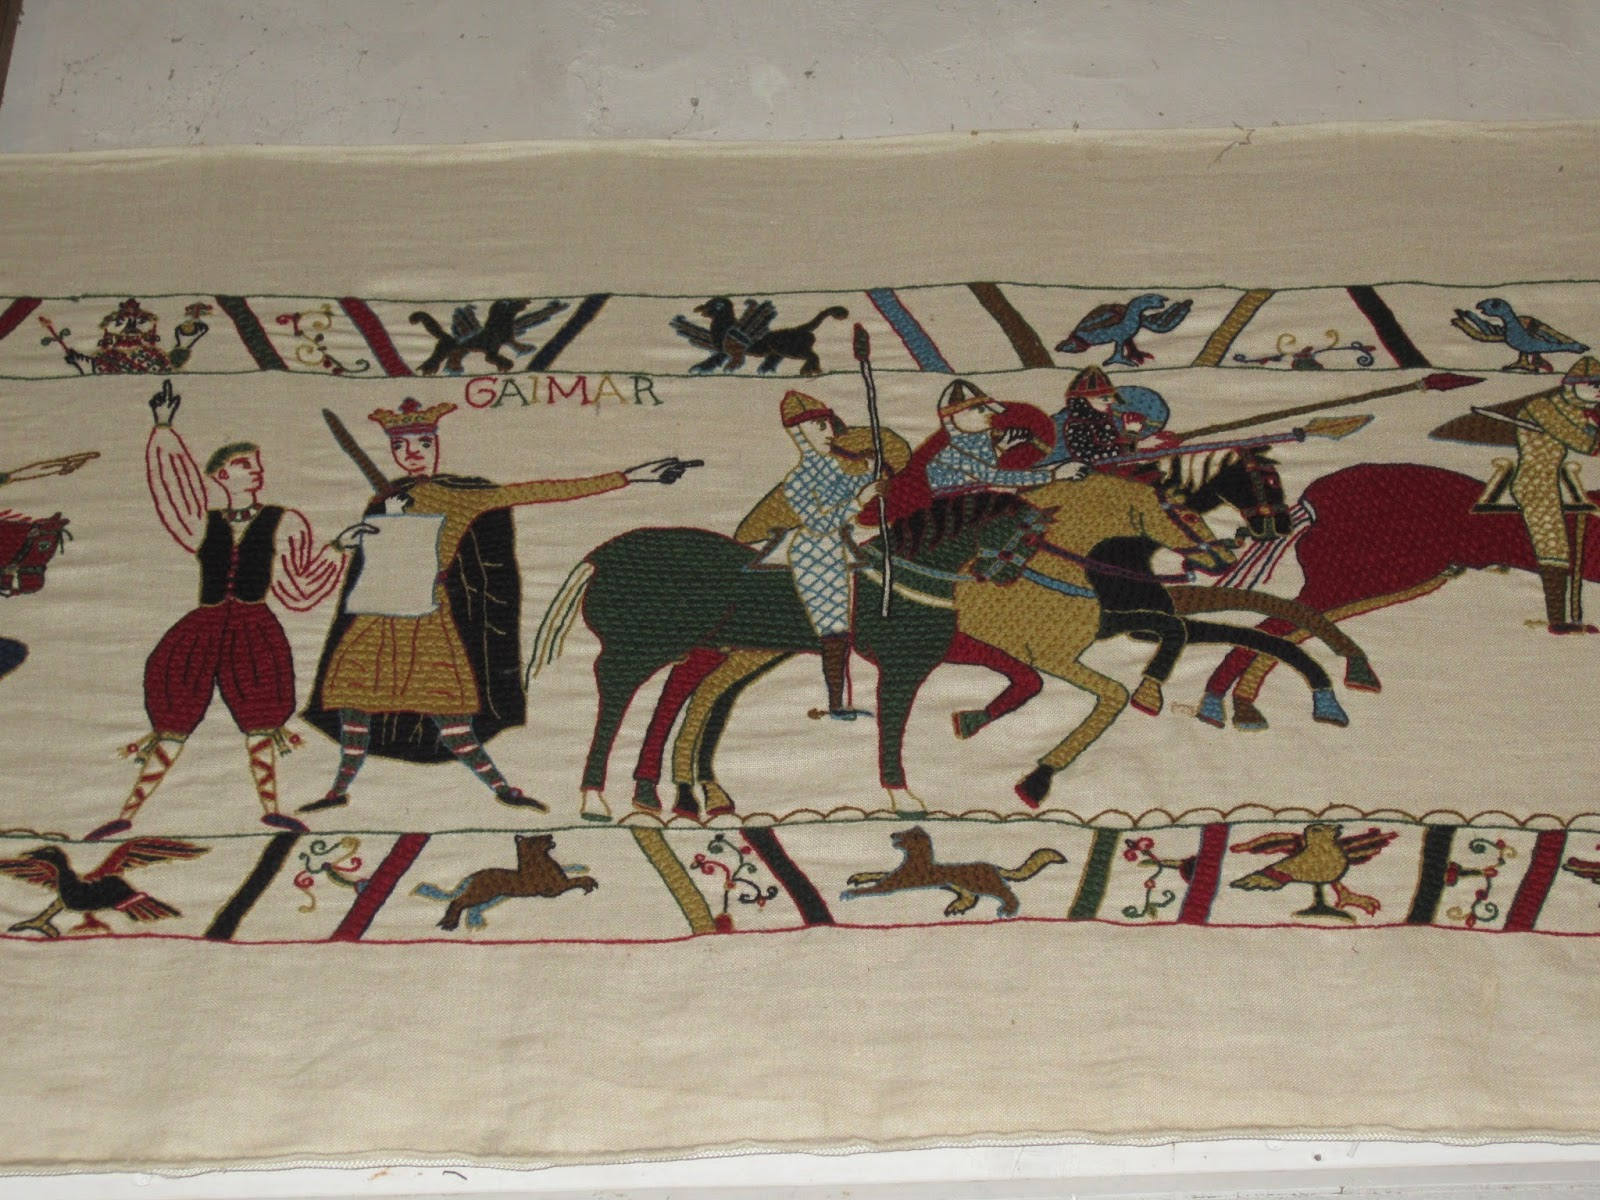 bayeux tapestry experience essay The bayeux tapestry and the mayan wall painting at bonampak depict violence in its art work the bayeux tapestry was created in 1070 and was commissioned.